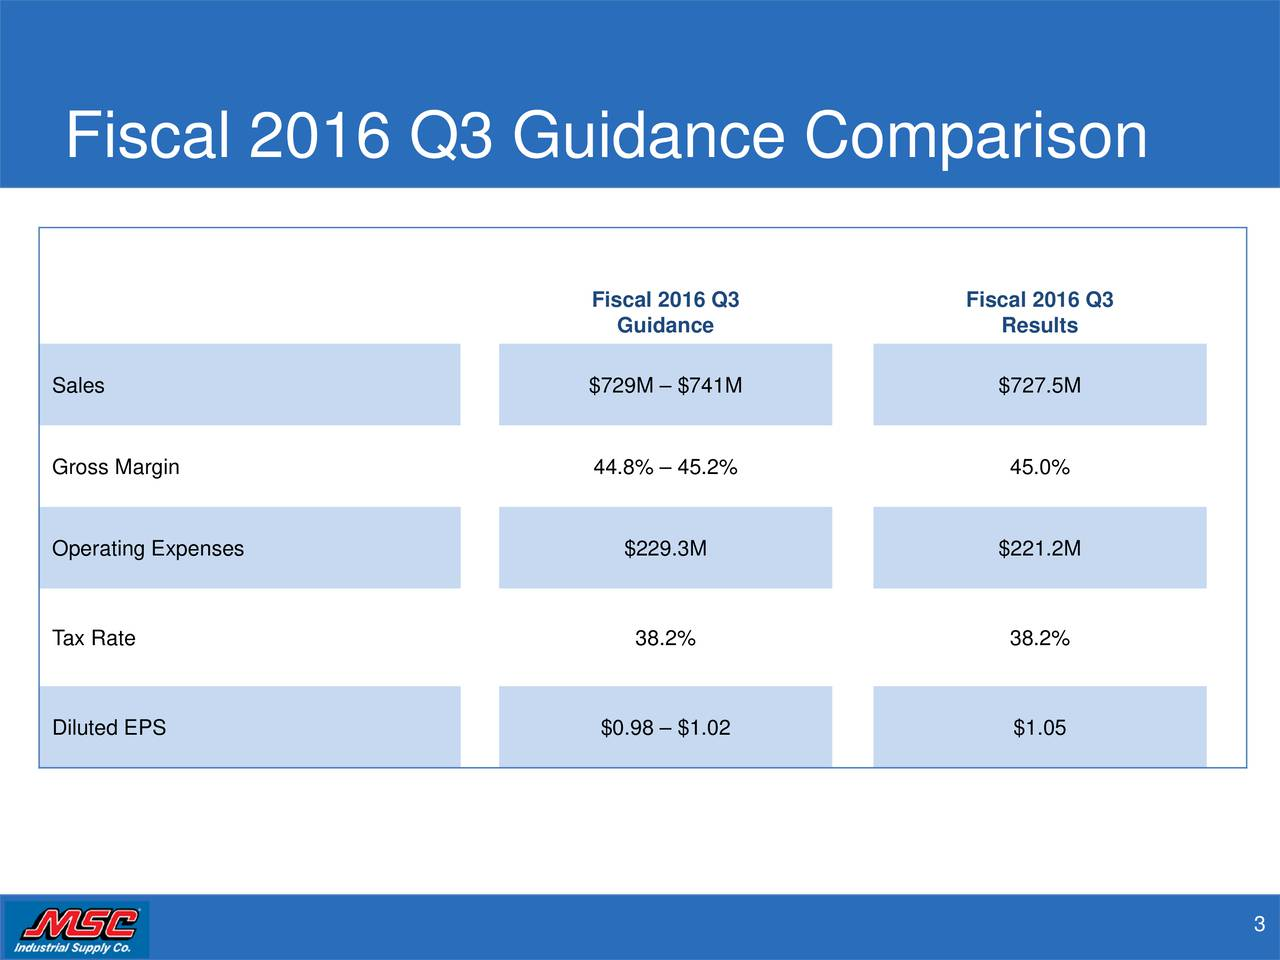 Fiscal 2016 Q3 Fiscal 2016 Q3 Guidance Results Sales $729M  $741M $727.5M Gross Margin 44.8%  45.2% 45.0% Operating Expenses $229.3M $221.2M Tax Rate 38.2% 38.2% Diluted EPS $0.98  $1.02 $1.05 3